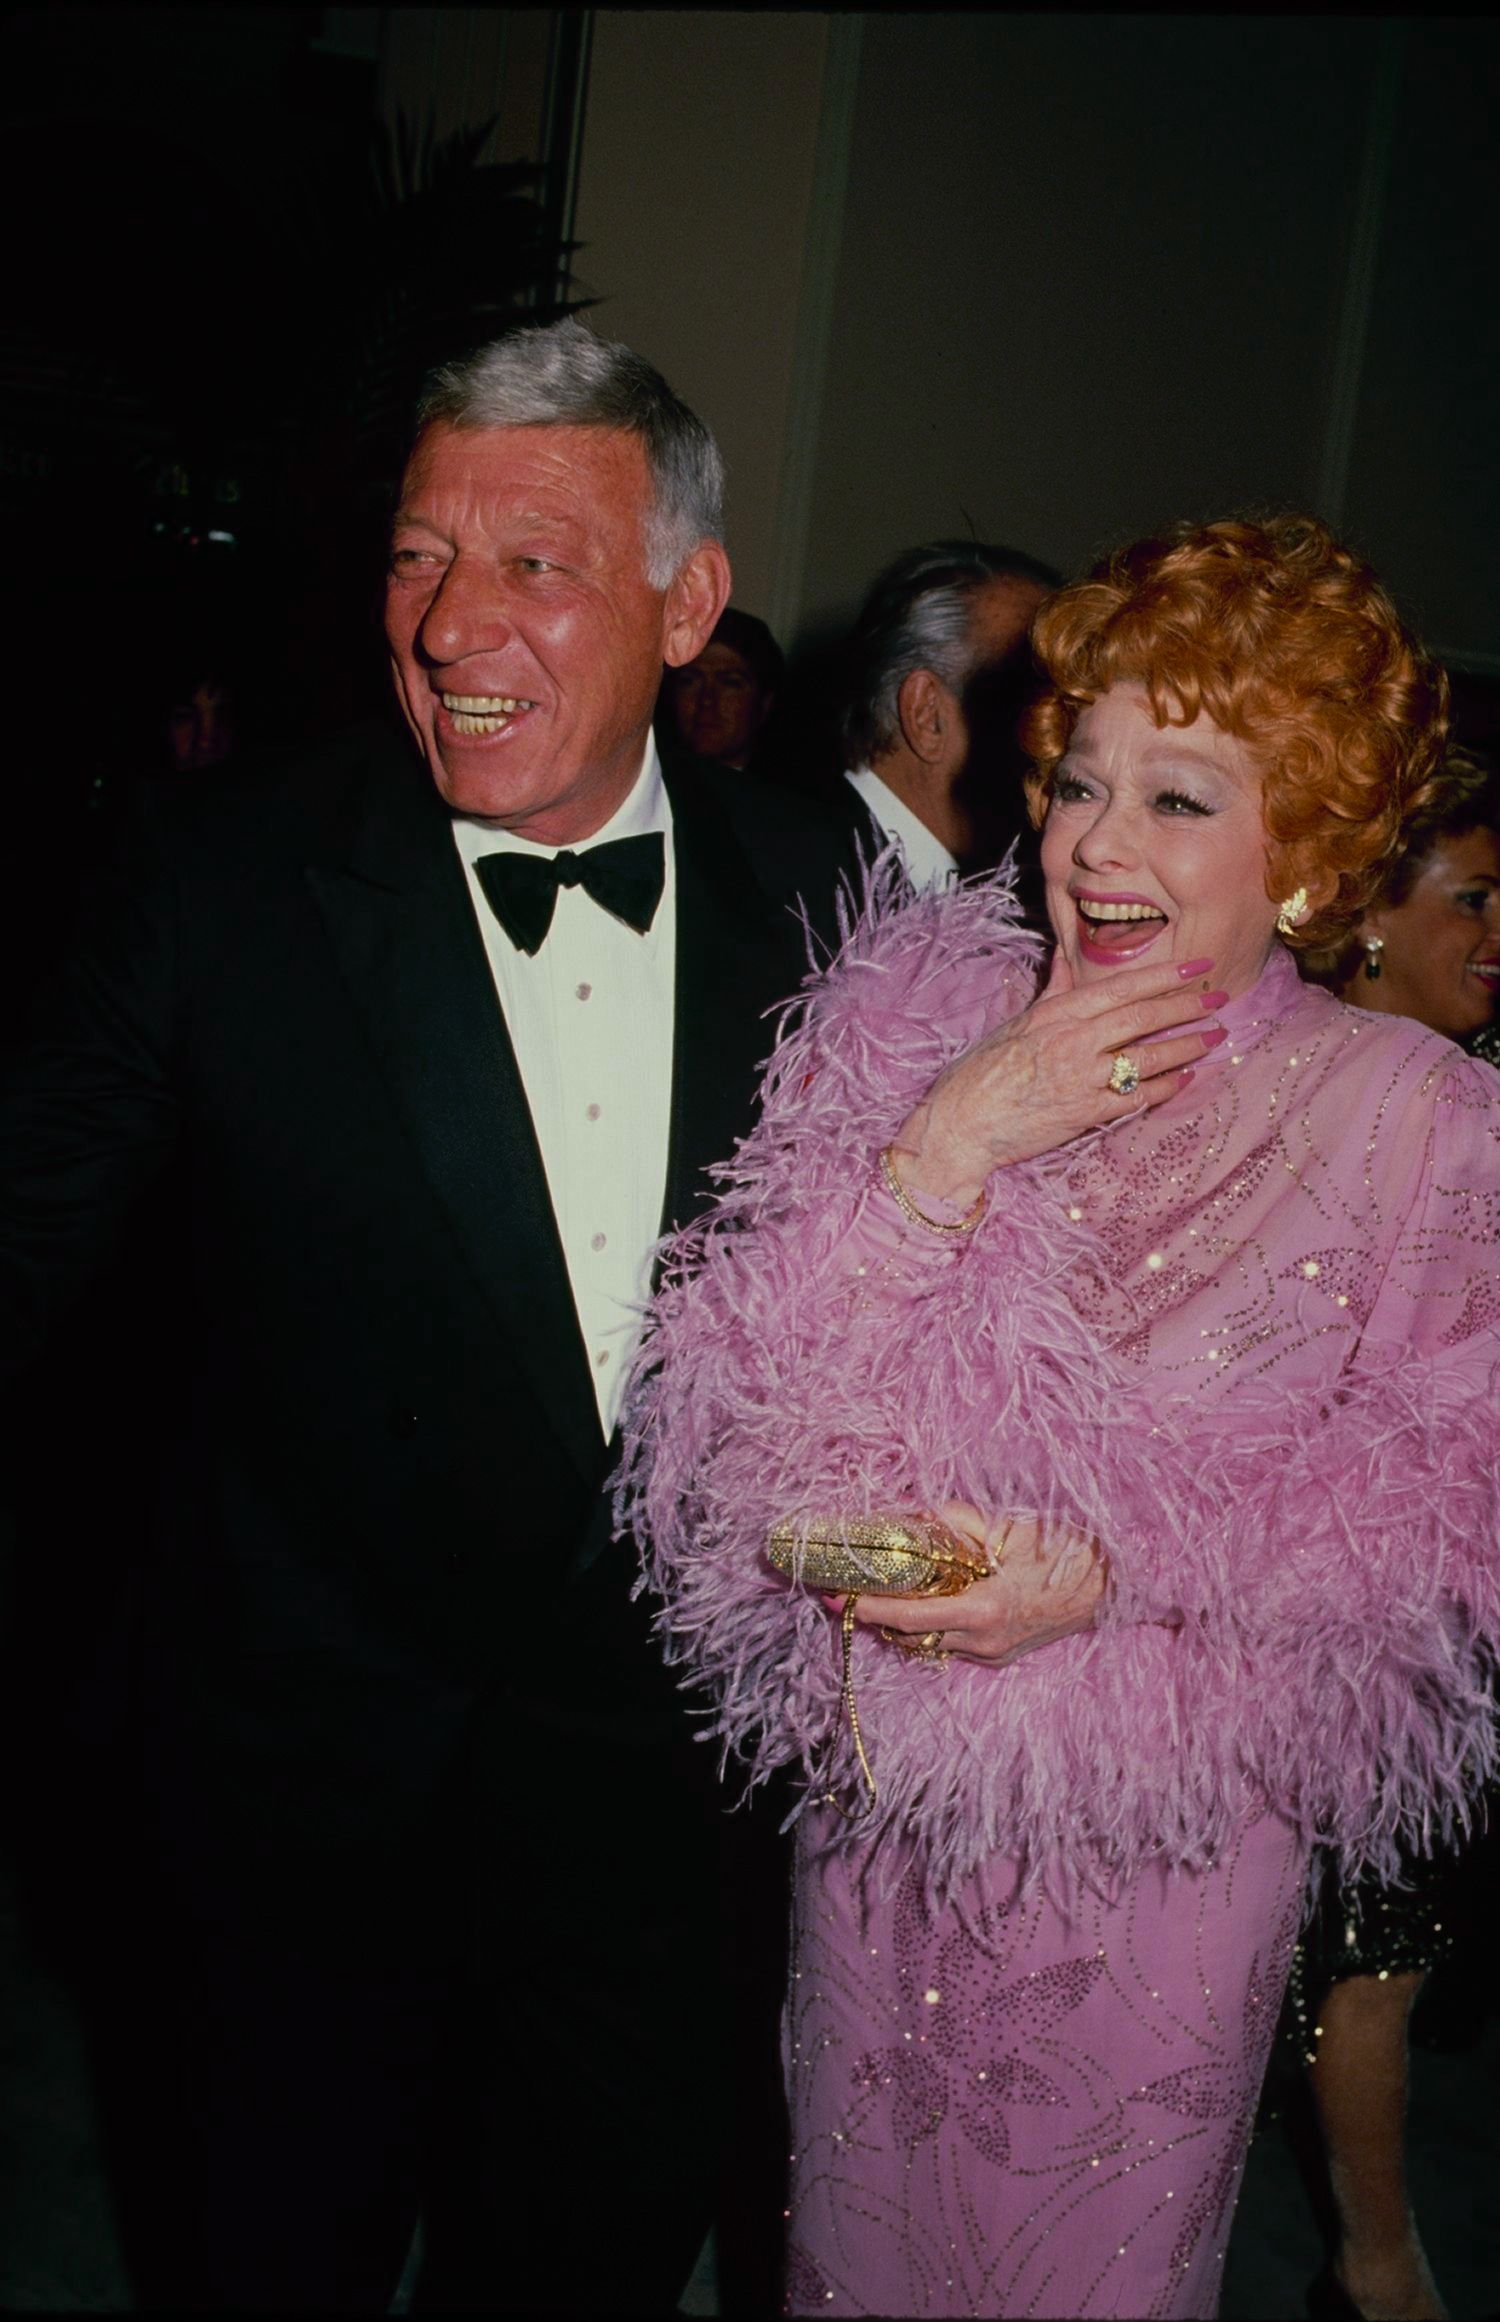 Ball and Morton at the American Cinema Awards in Los Angeles.